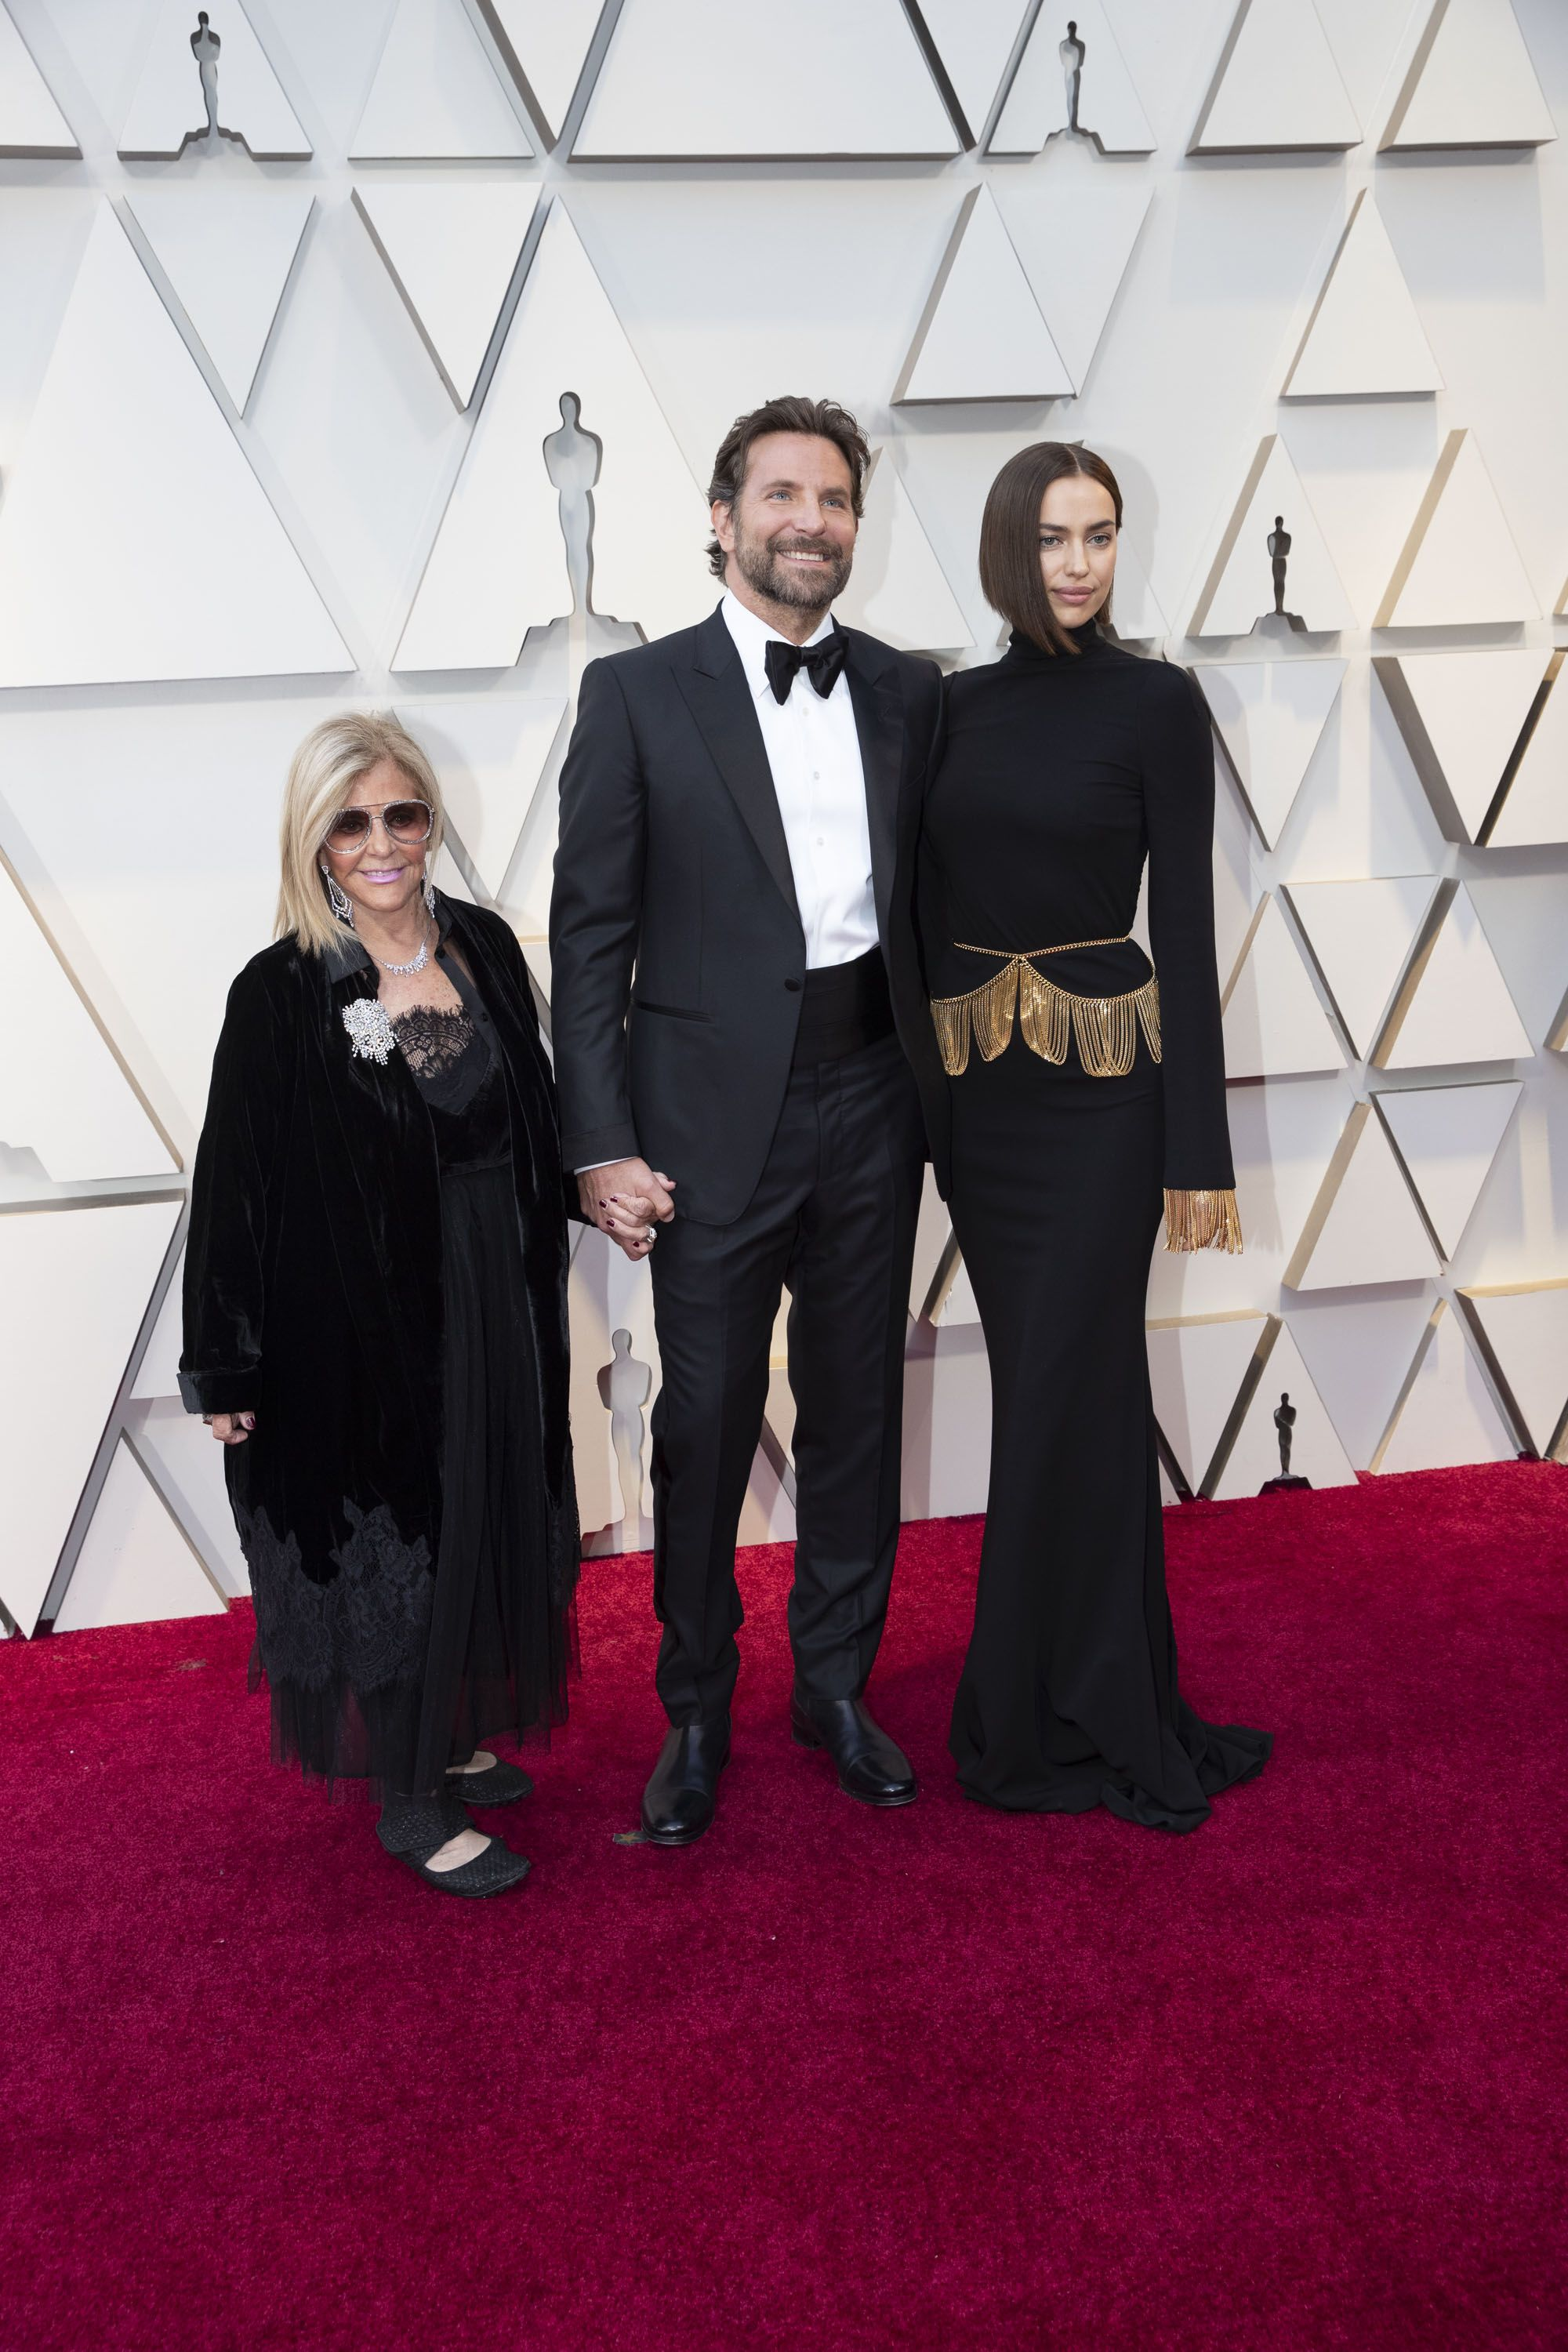 Oscars 2019 Best Dressed Men from the Academy